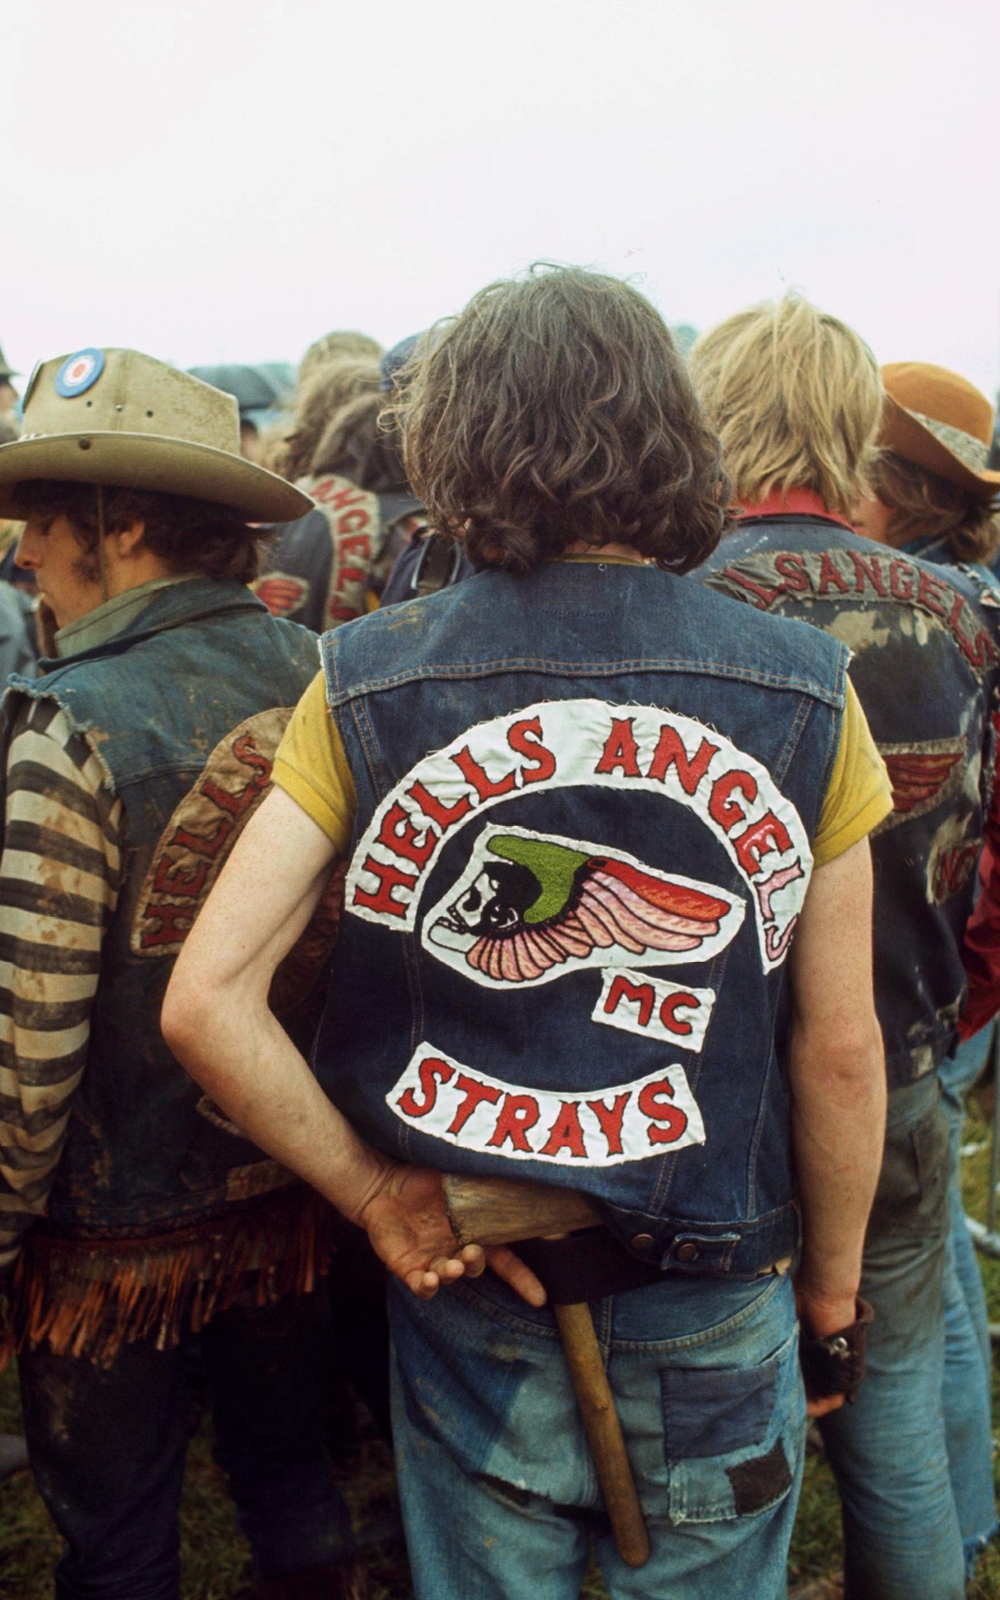 Hells angel with concealed weapon at pop concert. Bath festival, UK - 1970  ©   BRIAN MOODY / Rex Features   / PYMCA